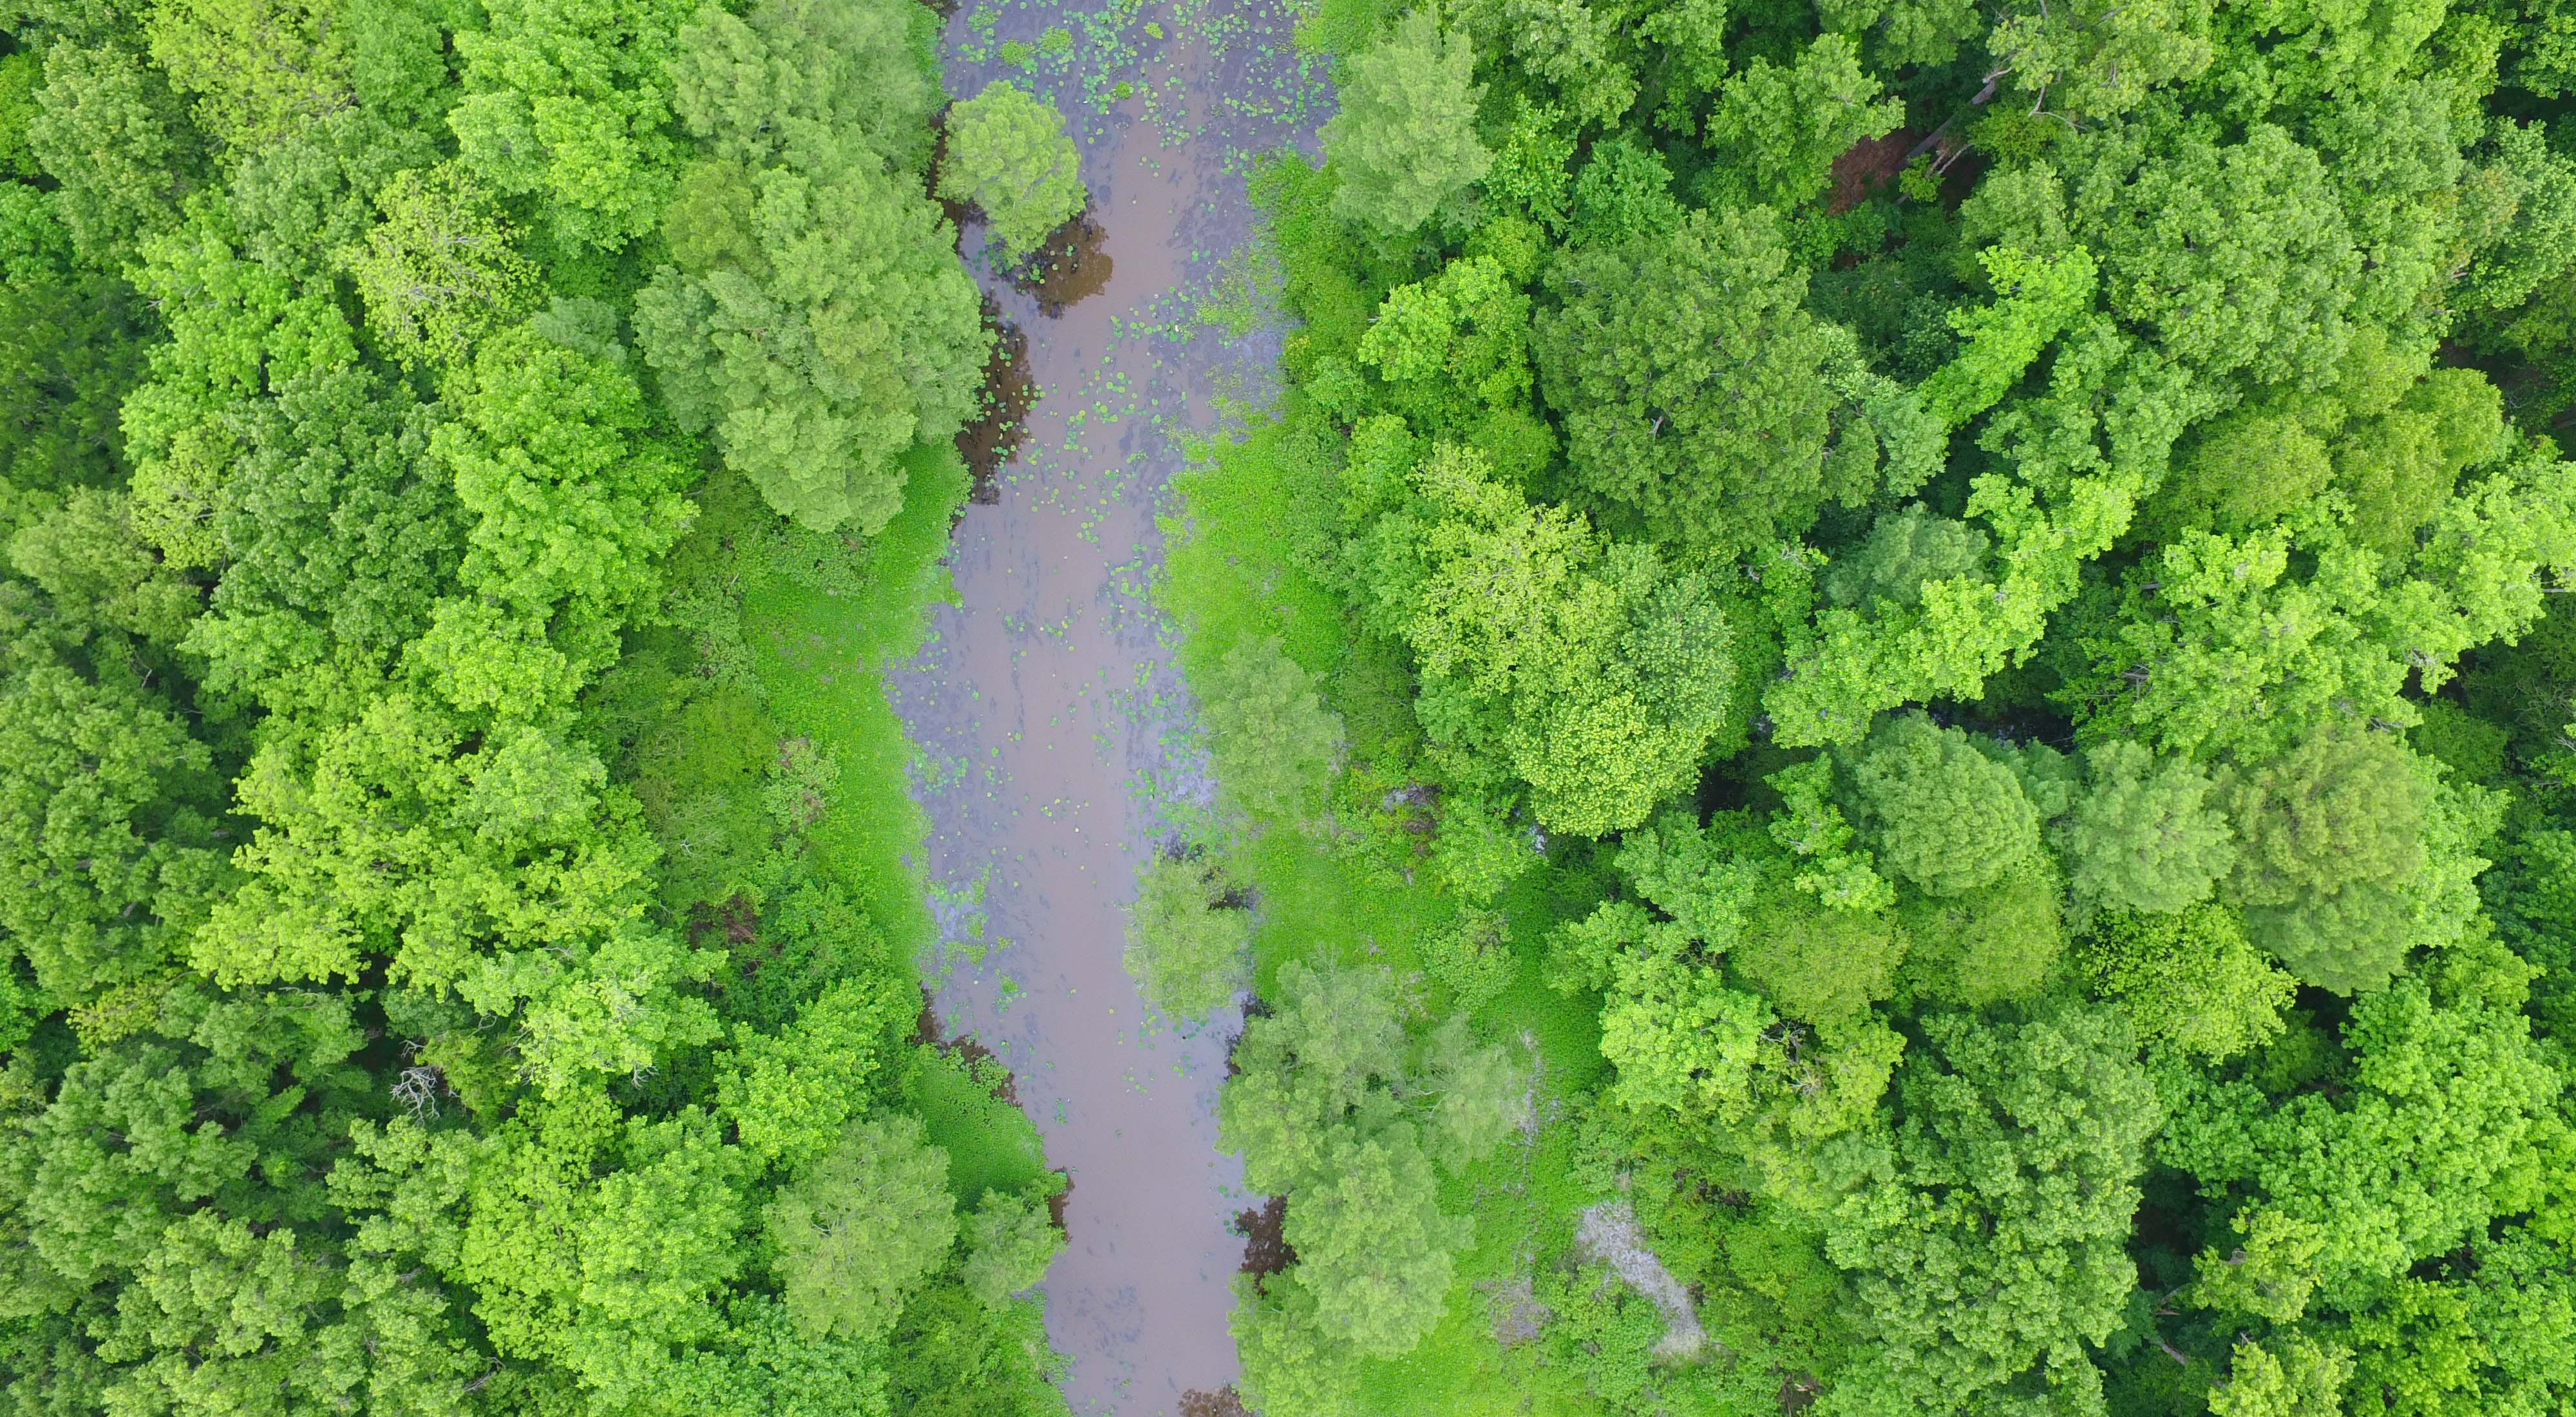 An aerial photo from a drone of forested wetlands in the Atchafalaya River Basin